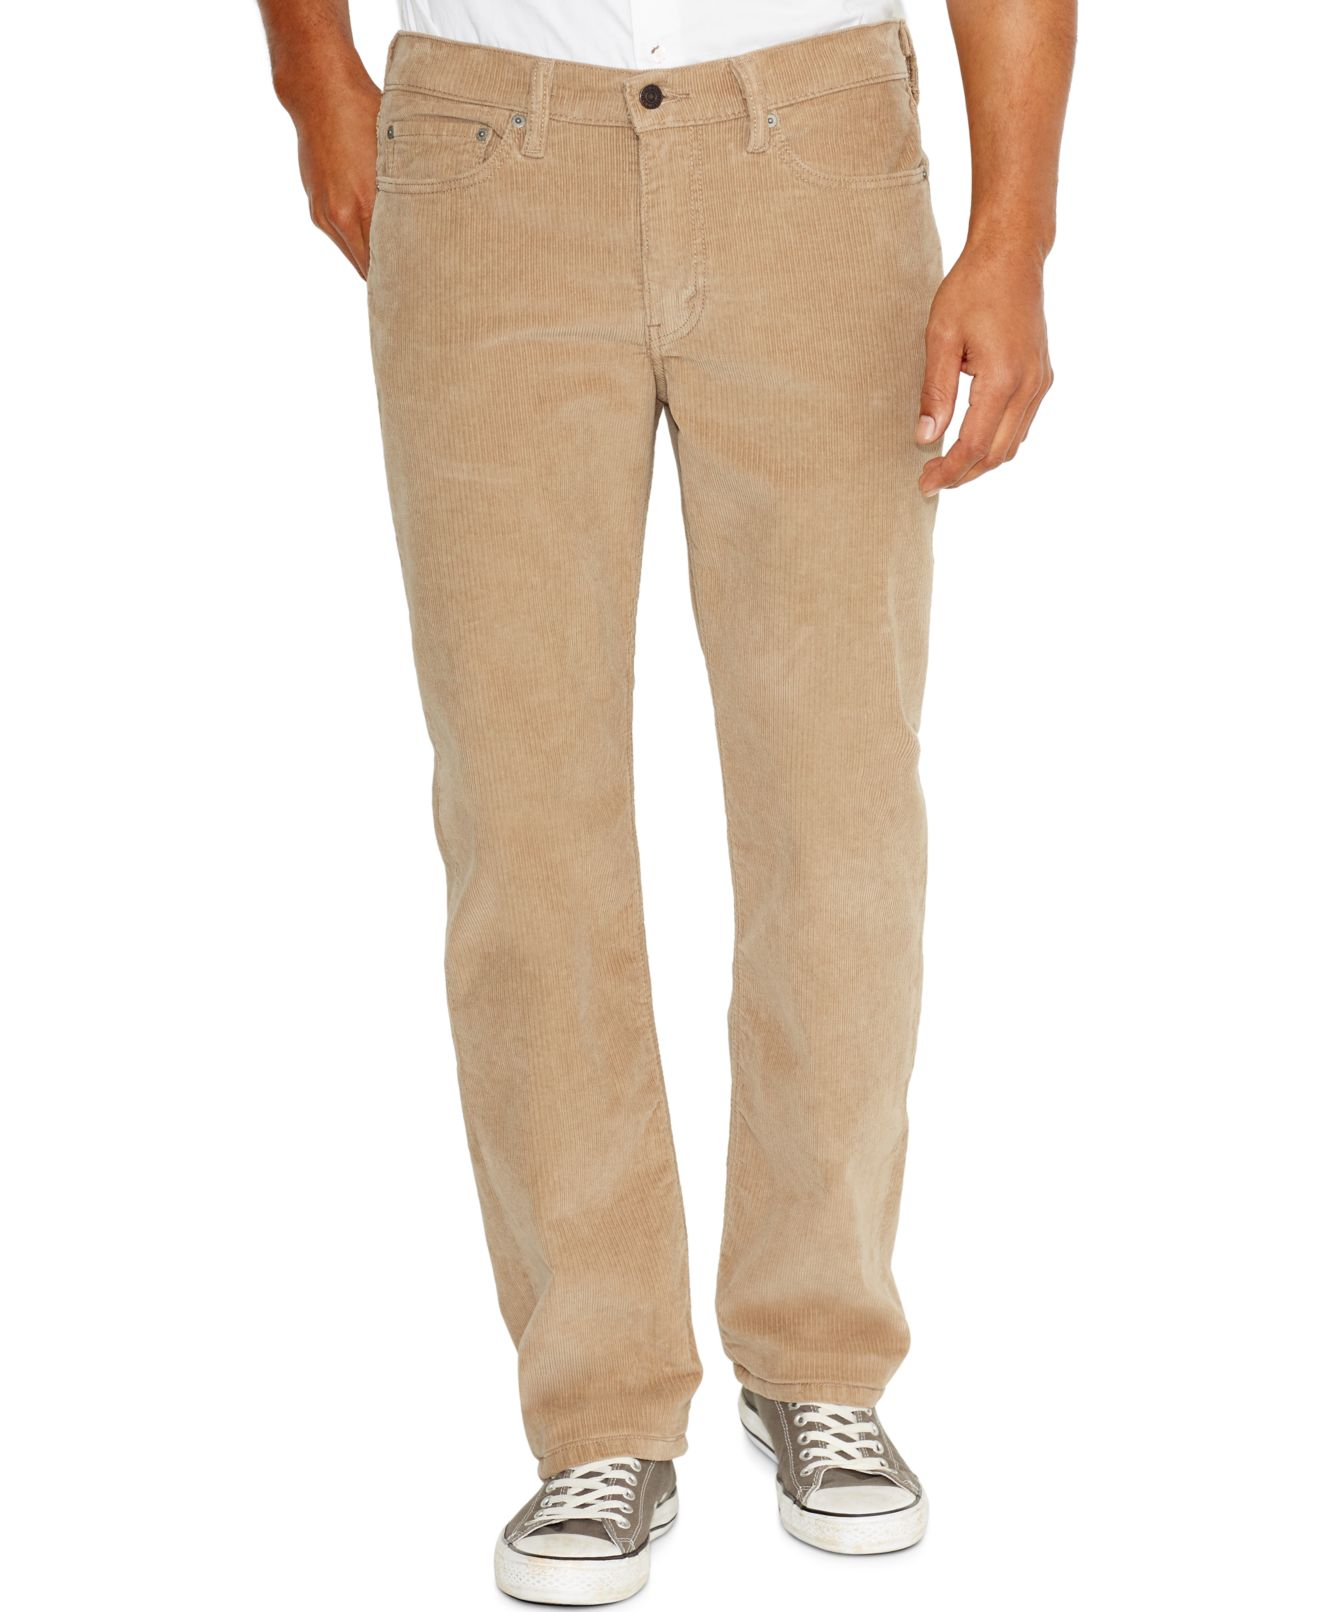 Mens Corduroy Pants On...